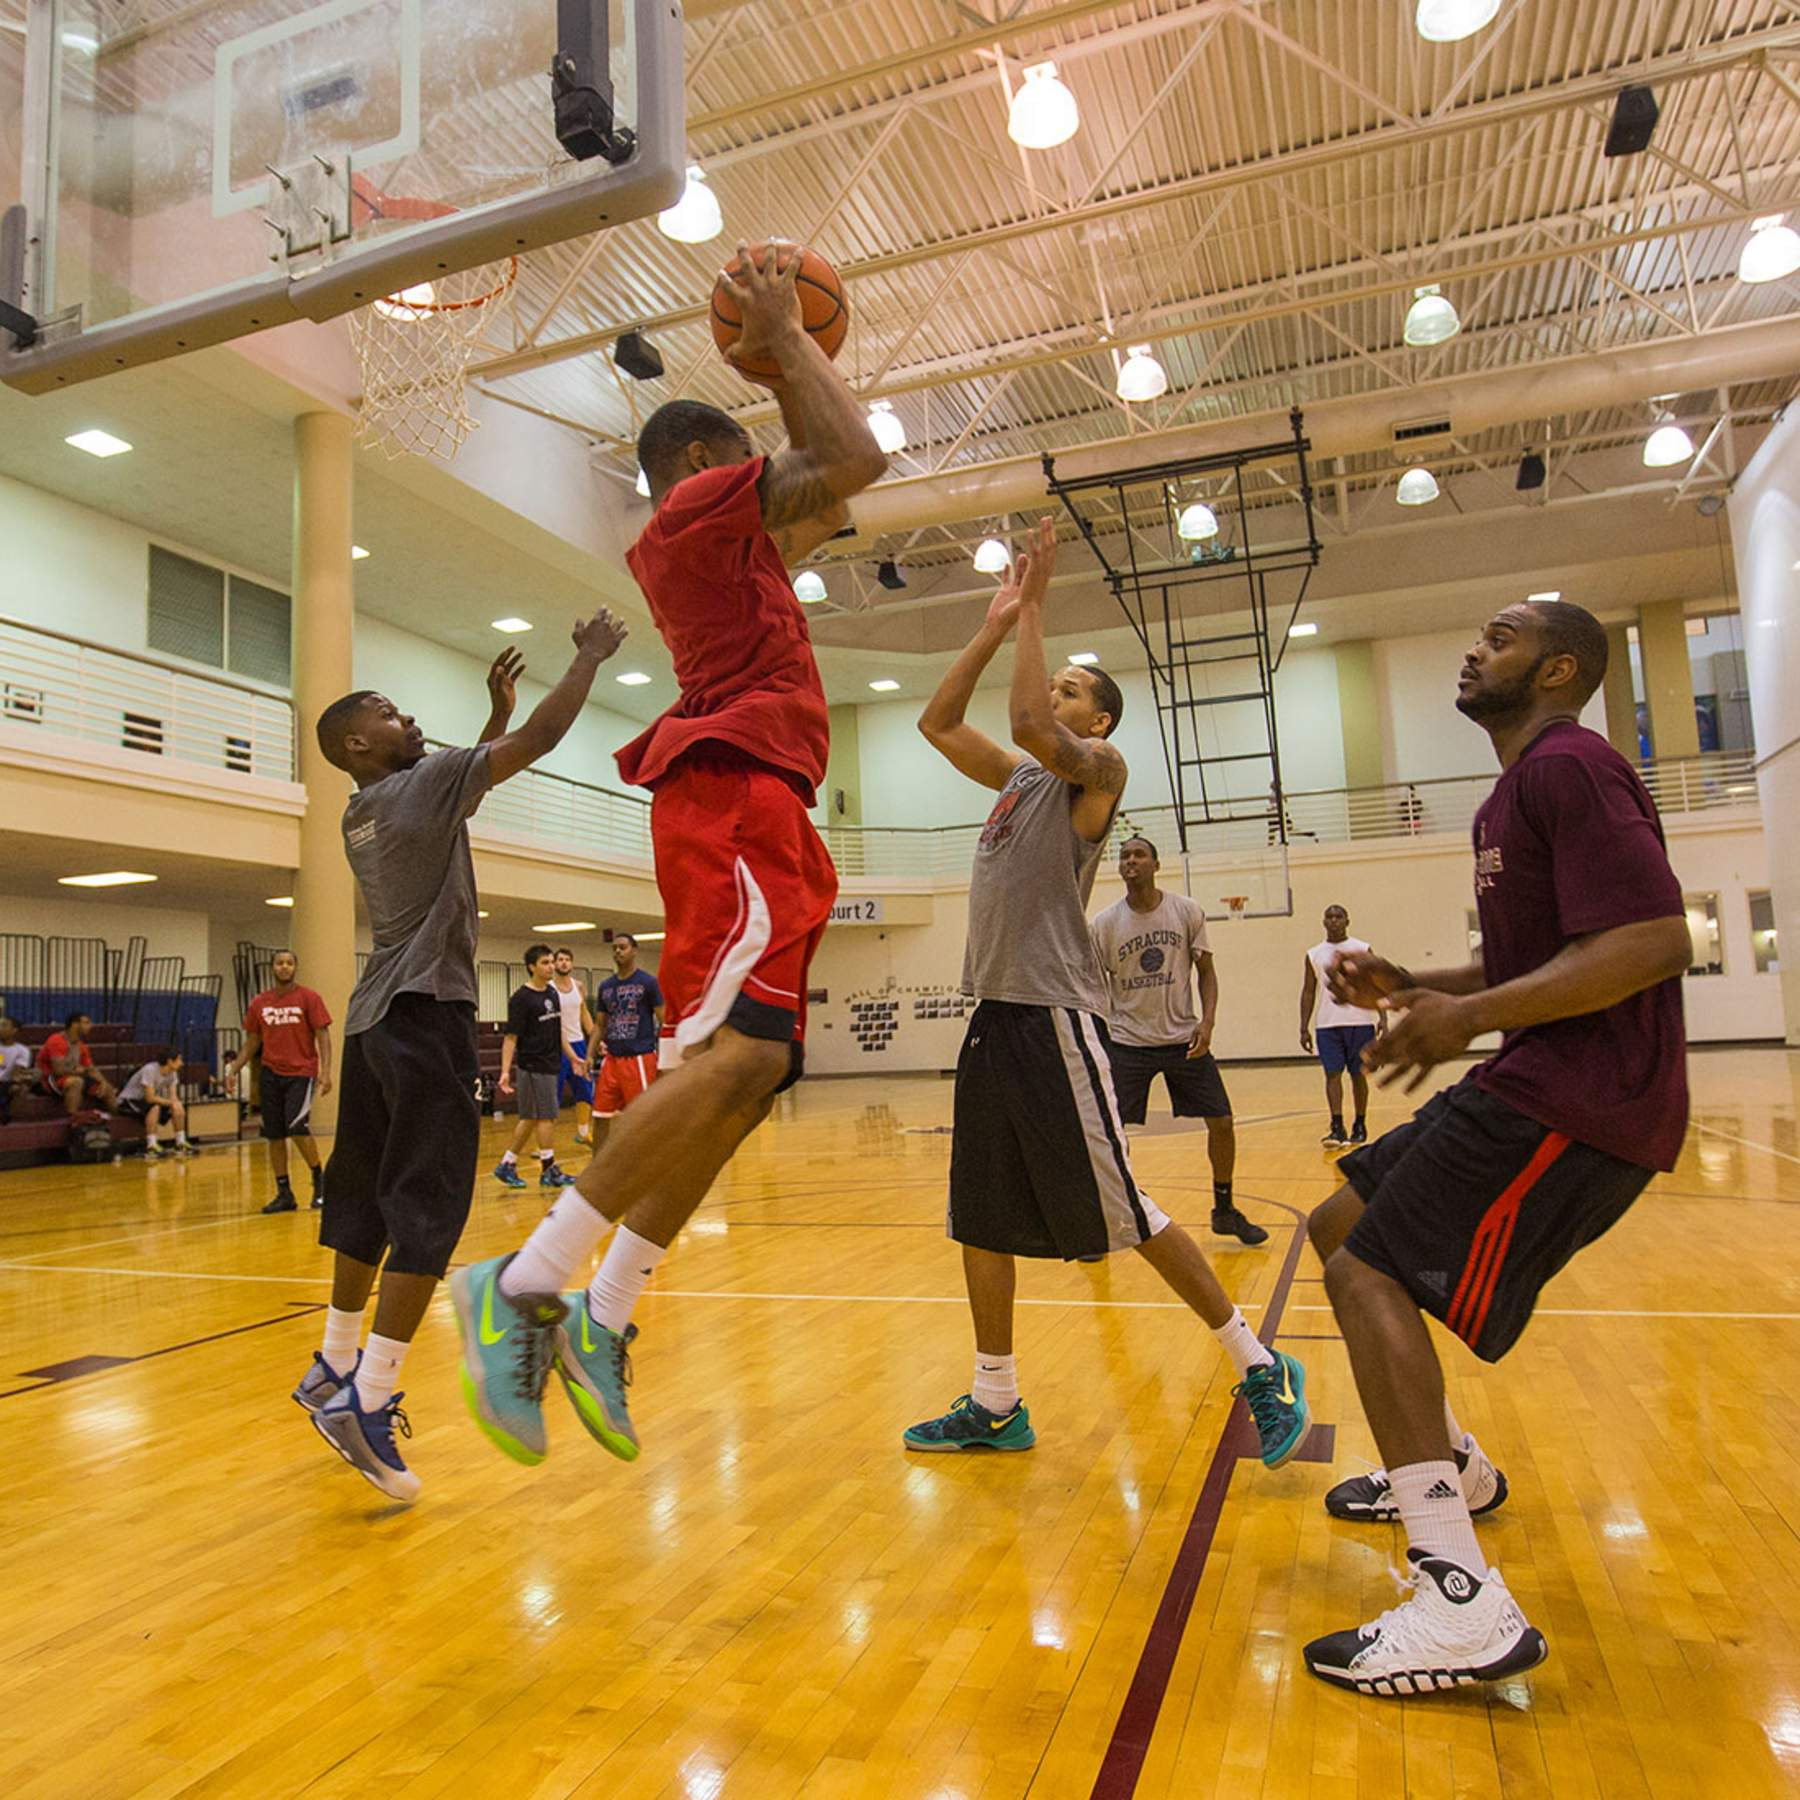 basketball players at the recreation center